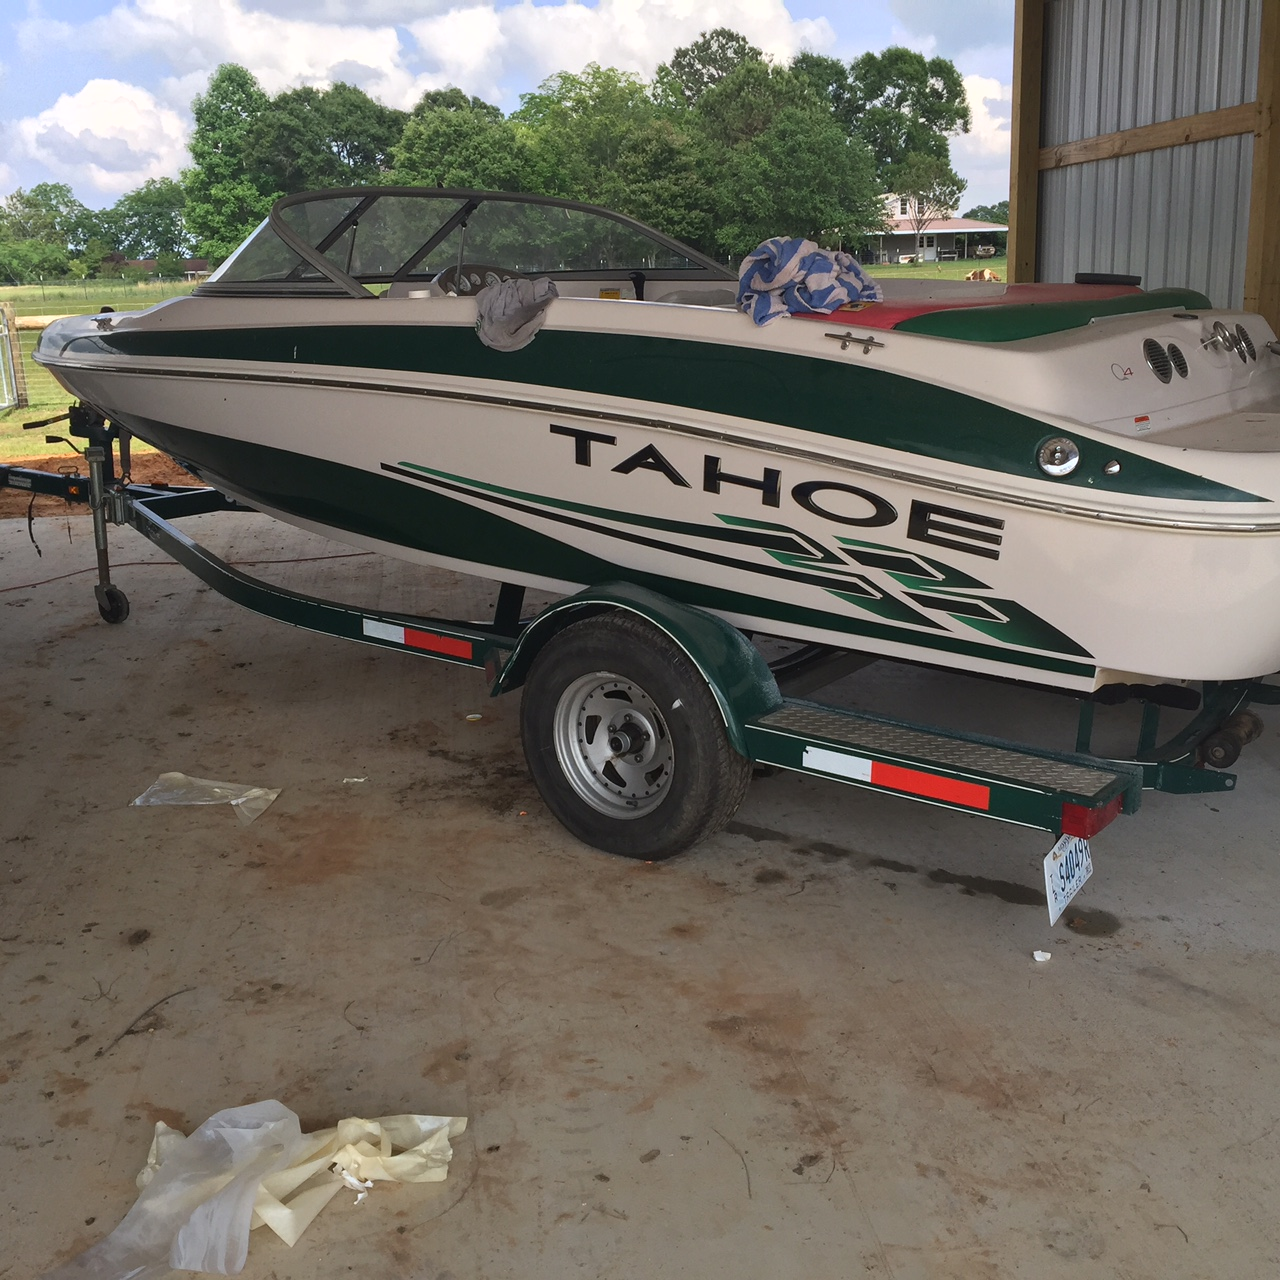 2005 20 Foot Bentley Cruiser Pontoon Boat For Sale In: 2005 TAHOE Q4 SPort Boat 20ft By Tracker Marine